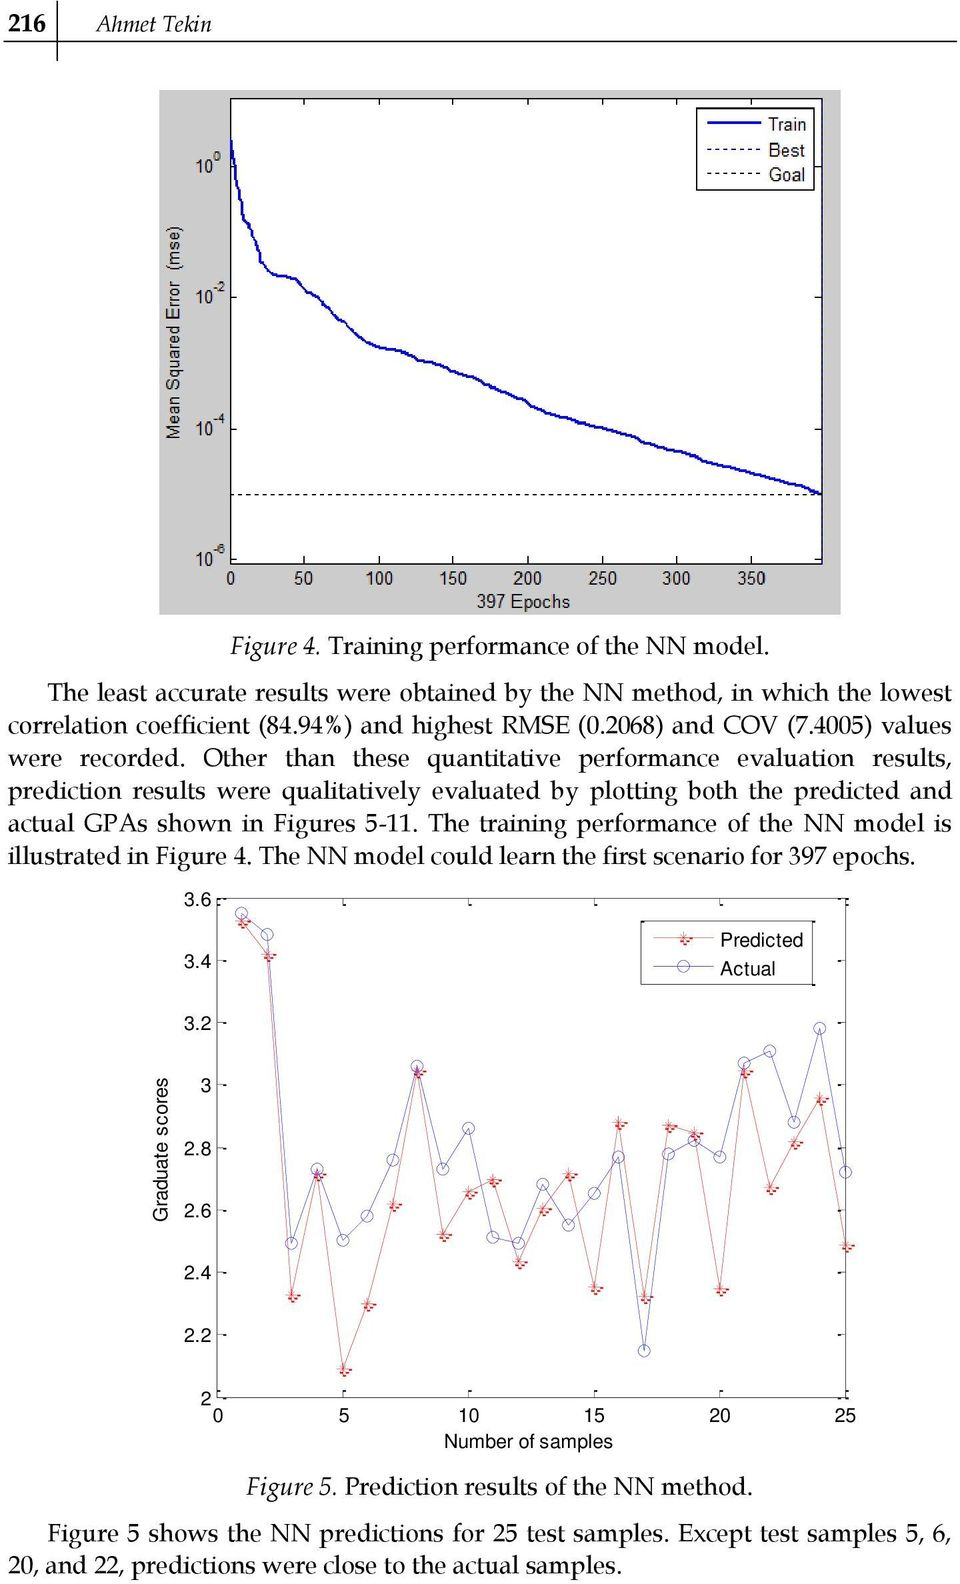 Other than these quantitative performance evaluation results, prediction results were qualitatively evaluated by plotting both the predicted and actual GPAs shown in Figures 5-11.